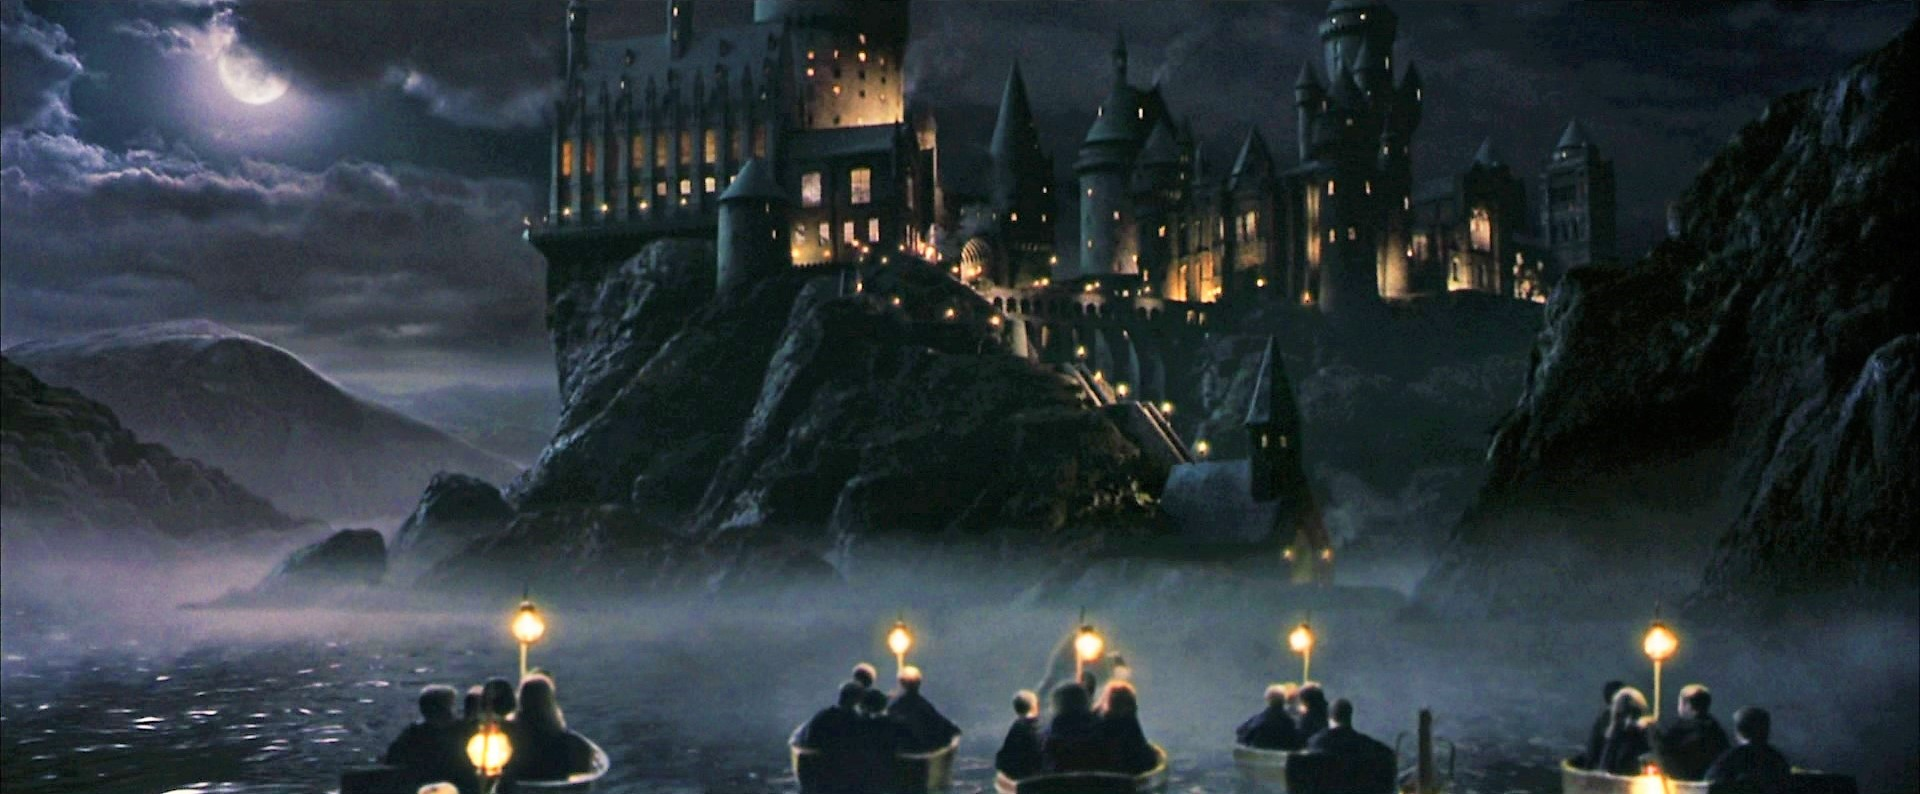 Lantern of your heart: Hogwarts dari Harry Potter 1-7